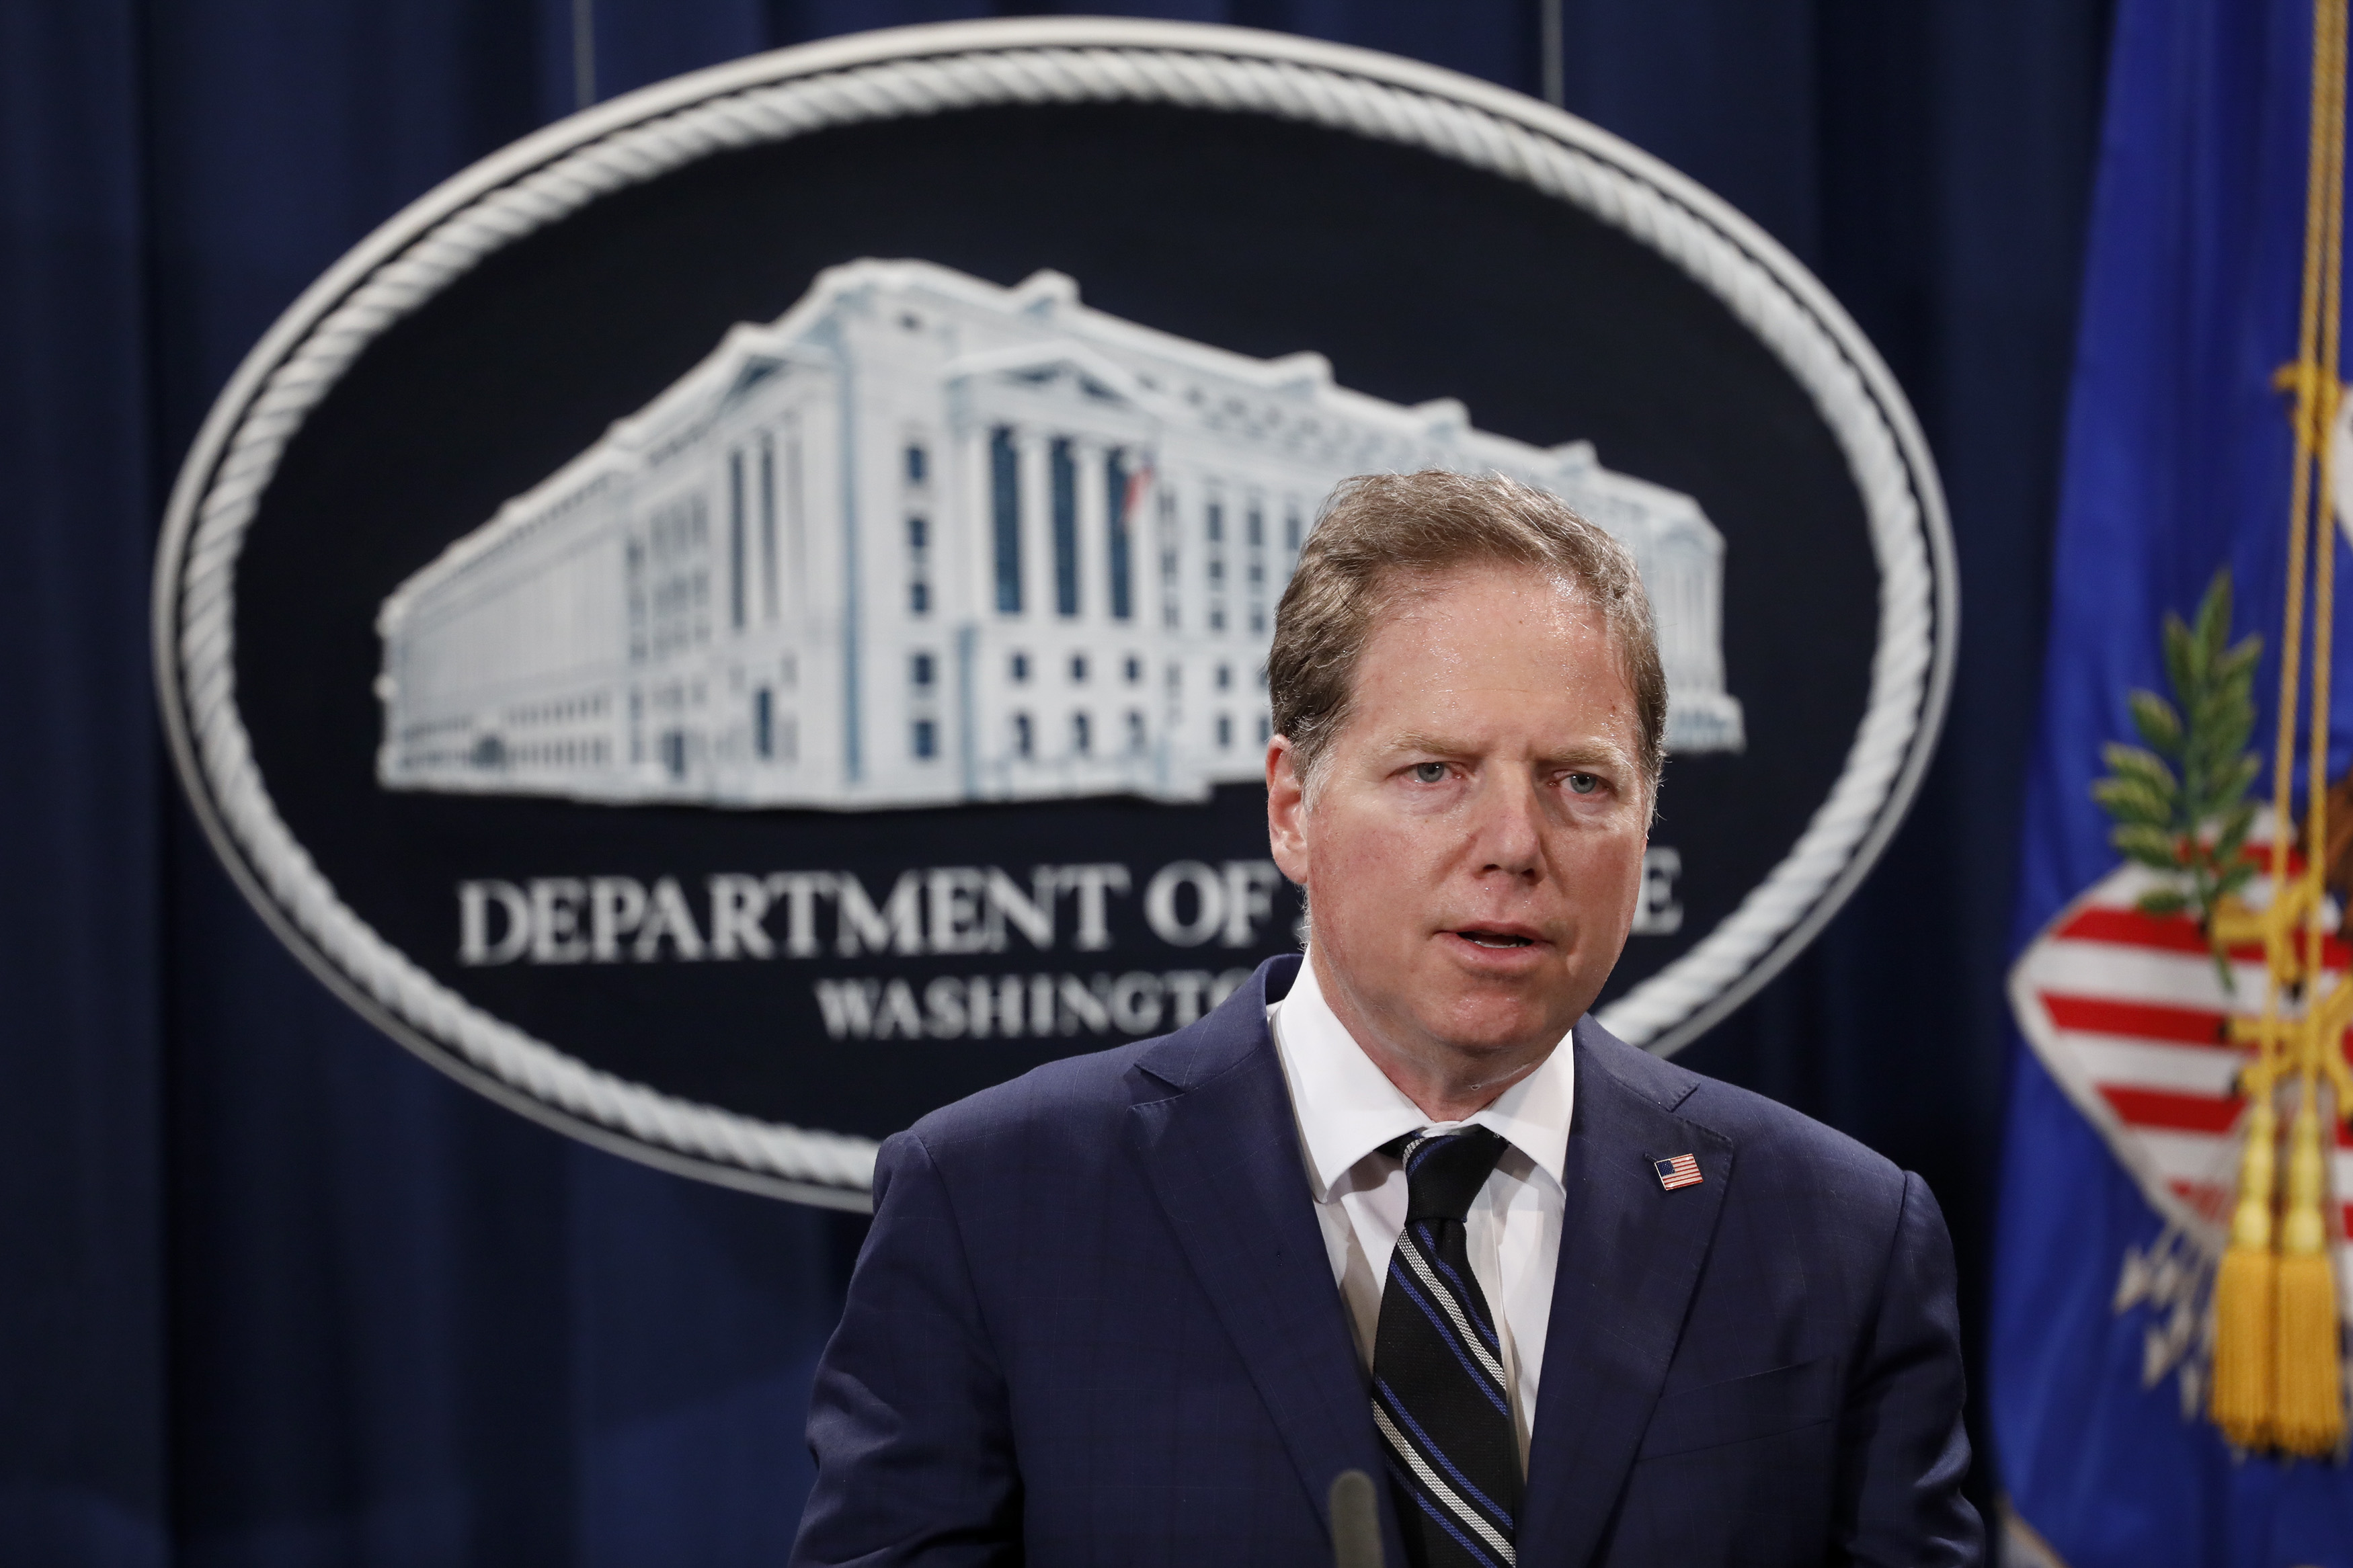 Geoffrey Berman, United States Attorney for the Southern District of New York, speaks at a press conference about the apprehension of a suspect in the recent spate of mail bombings at the Department of Justice on October 26, 2018 in Washington, DC. (Photo by Aaron P. Bernstein/Getty Images)